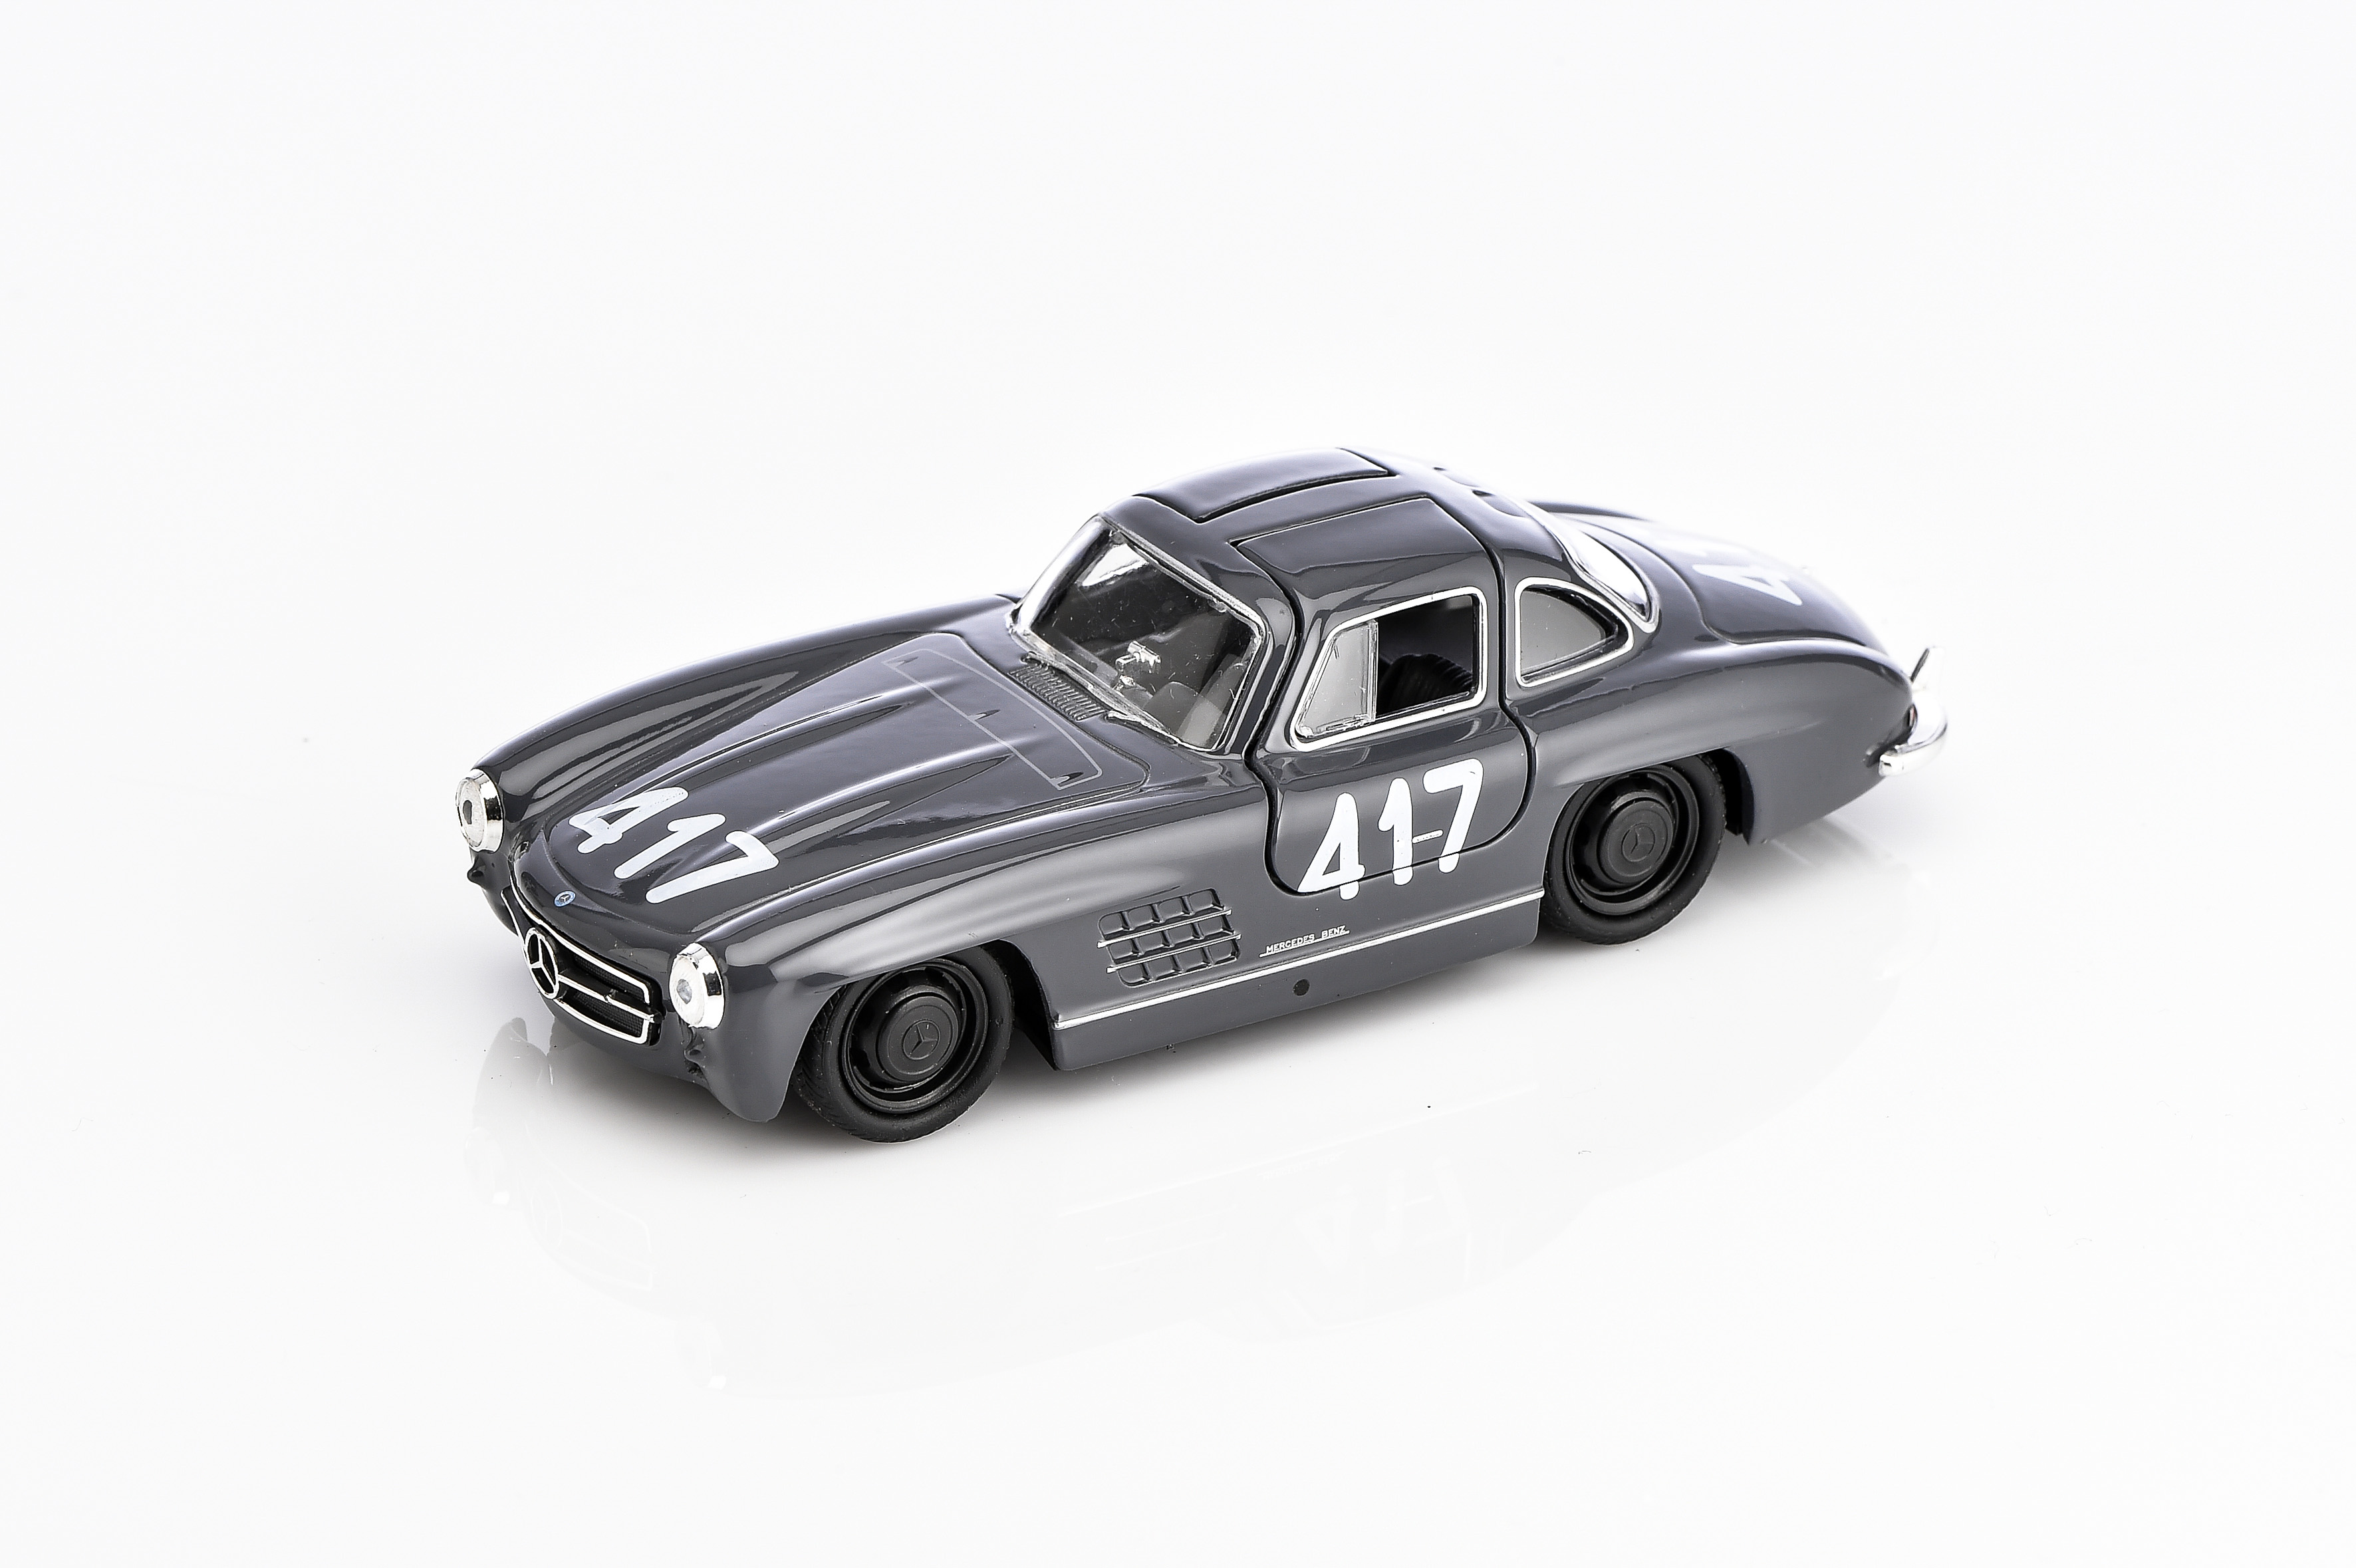 300 sl mille miglia 417 special edition mercedes benz. Black Bedroom Furniture Sets. Home Design Ideas